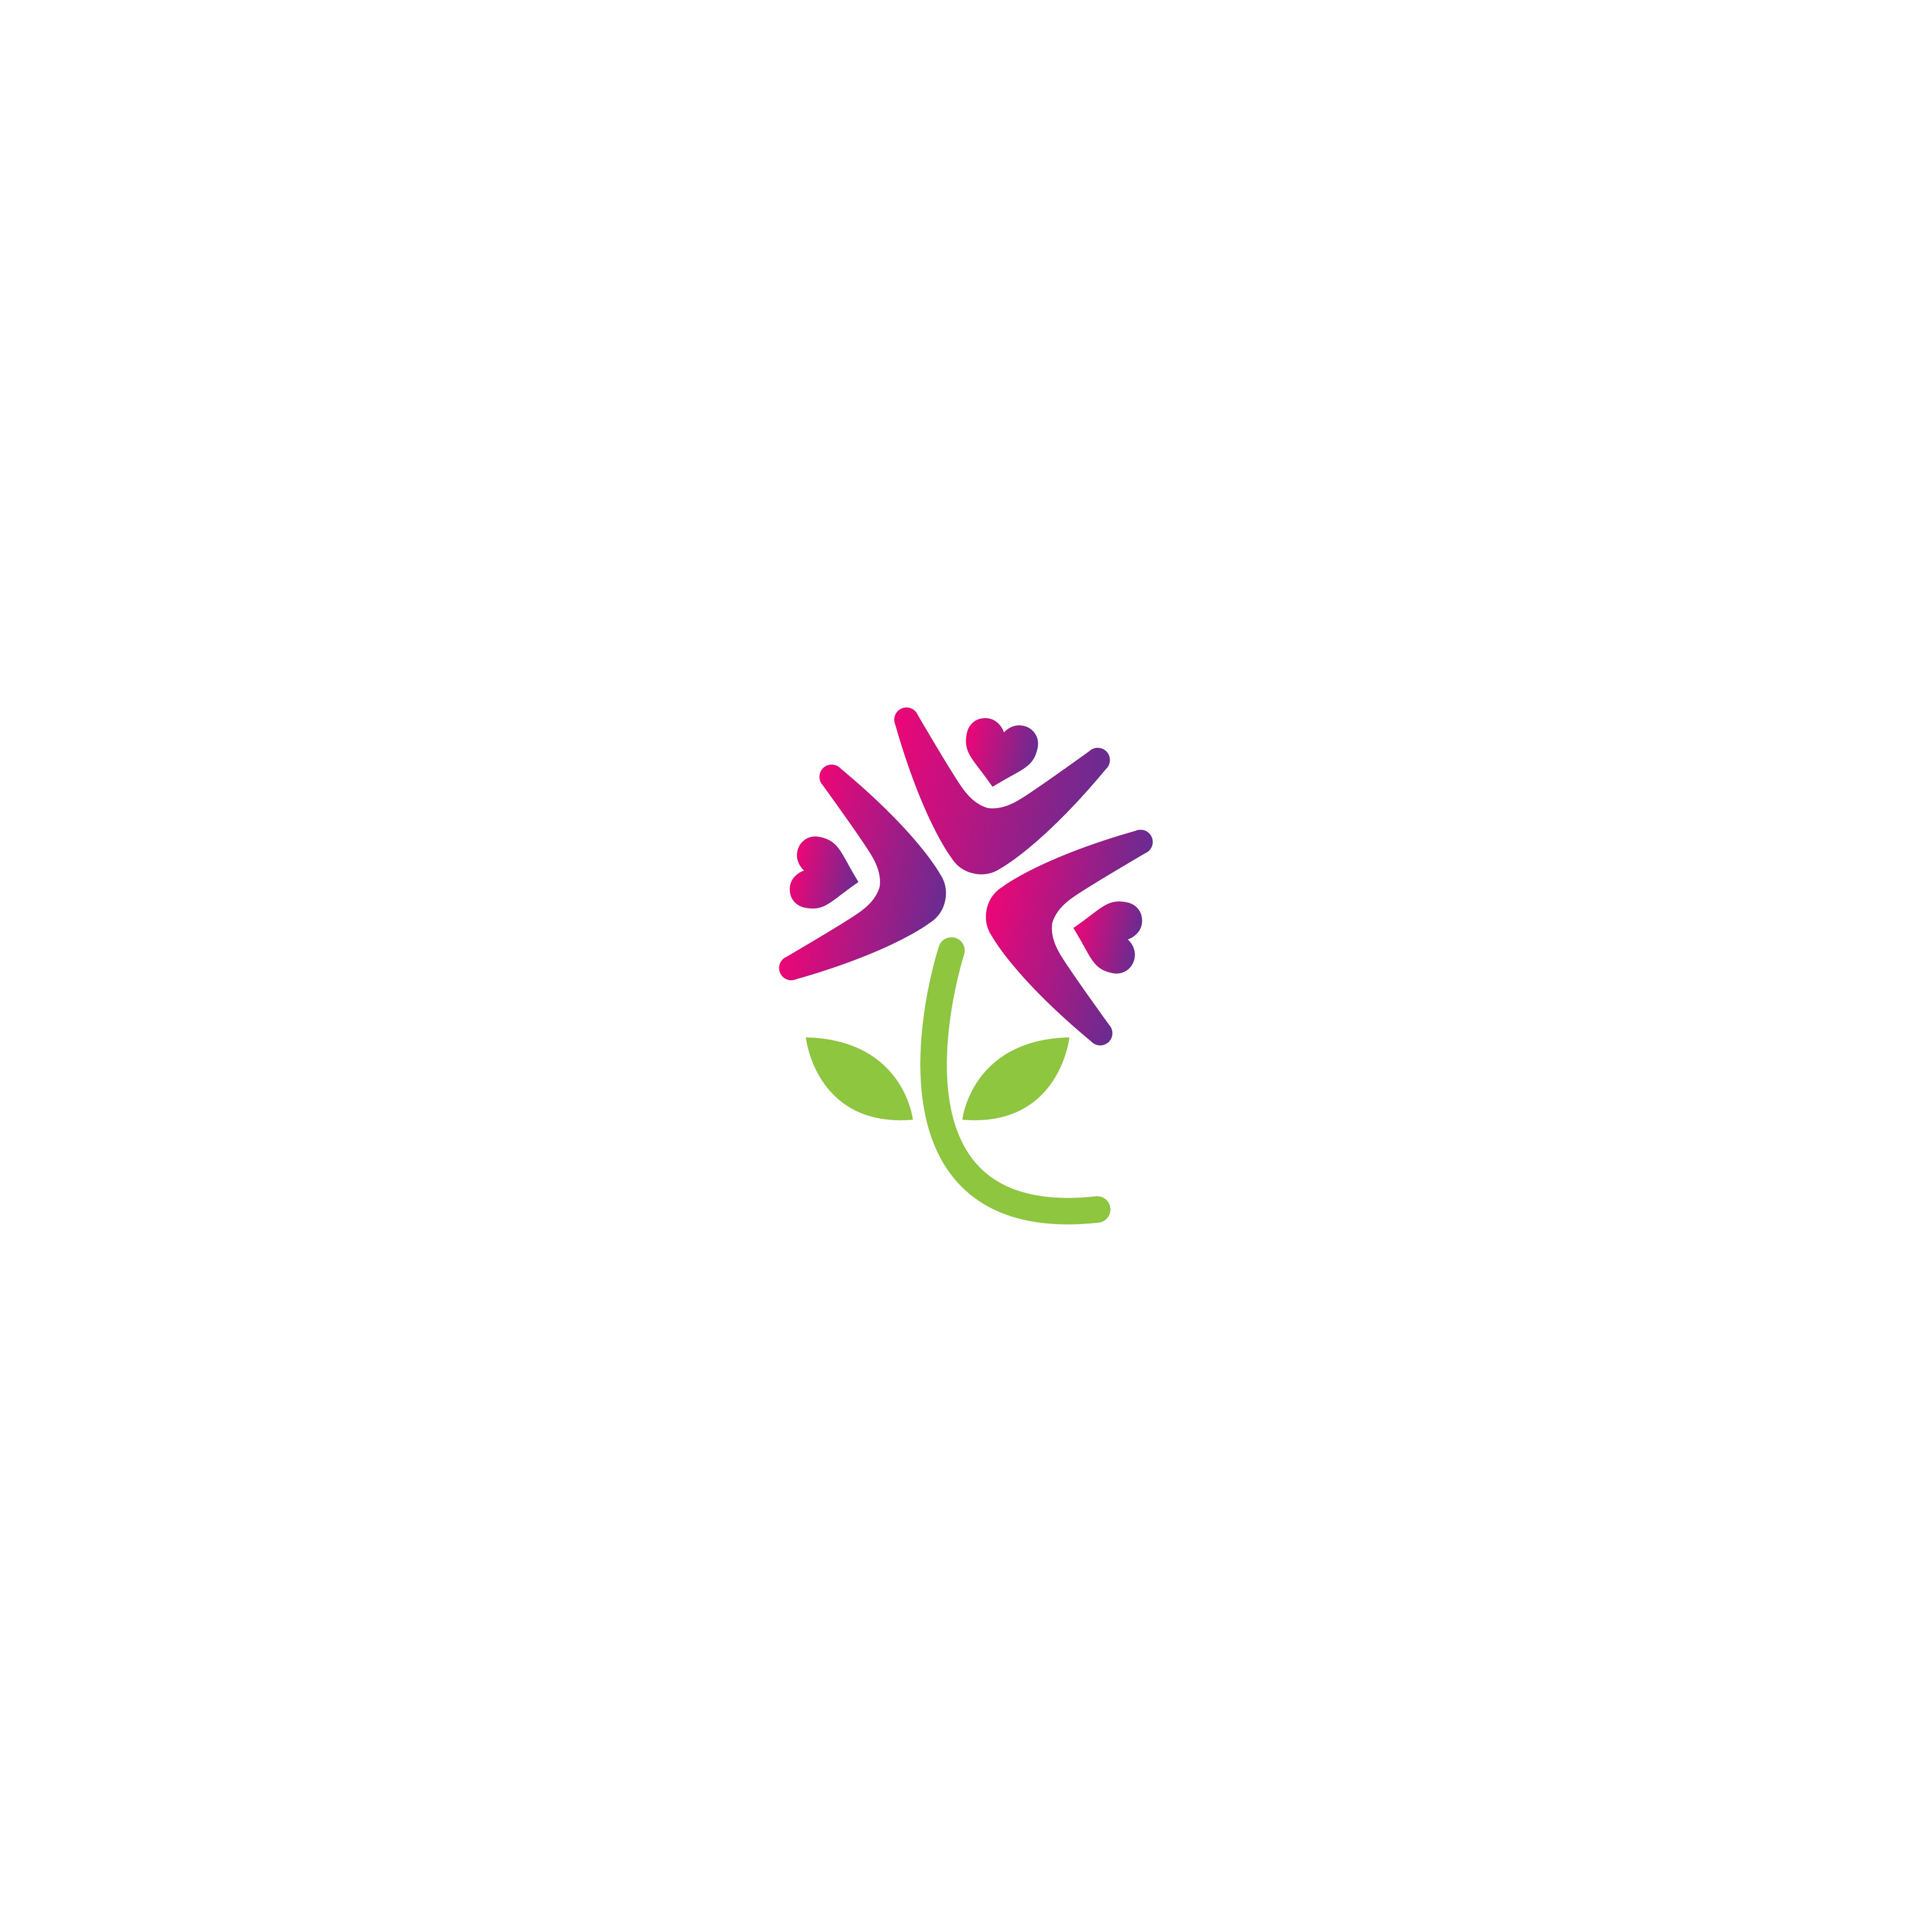 Design a joyful logo for Bloomerang - we collect and donate flower arrangements